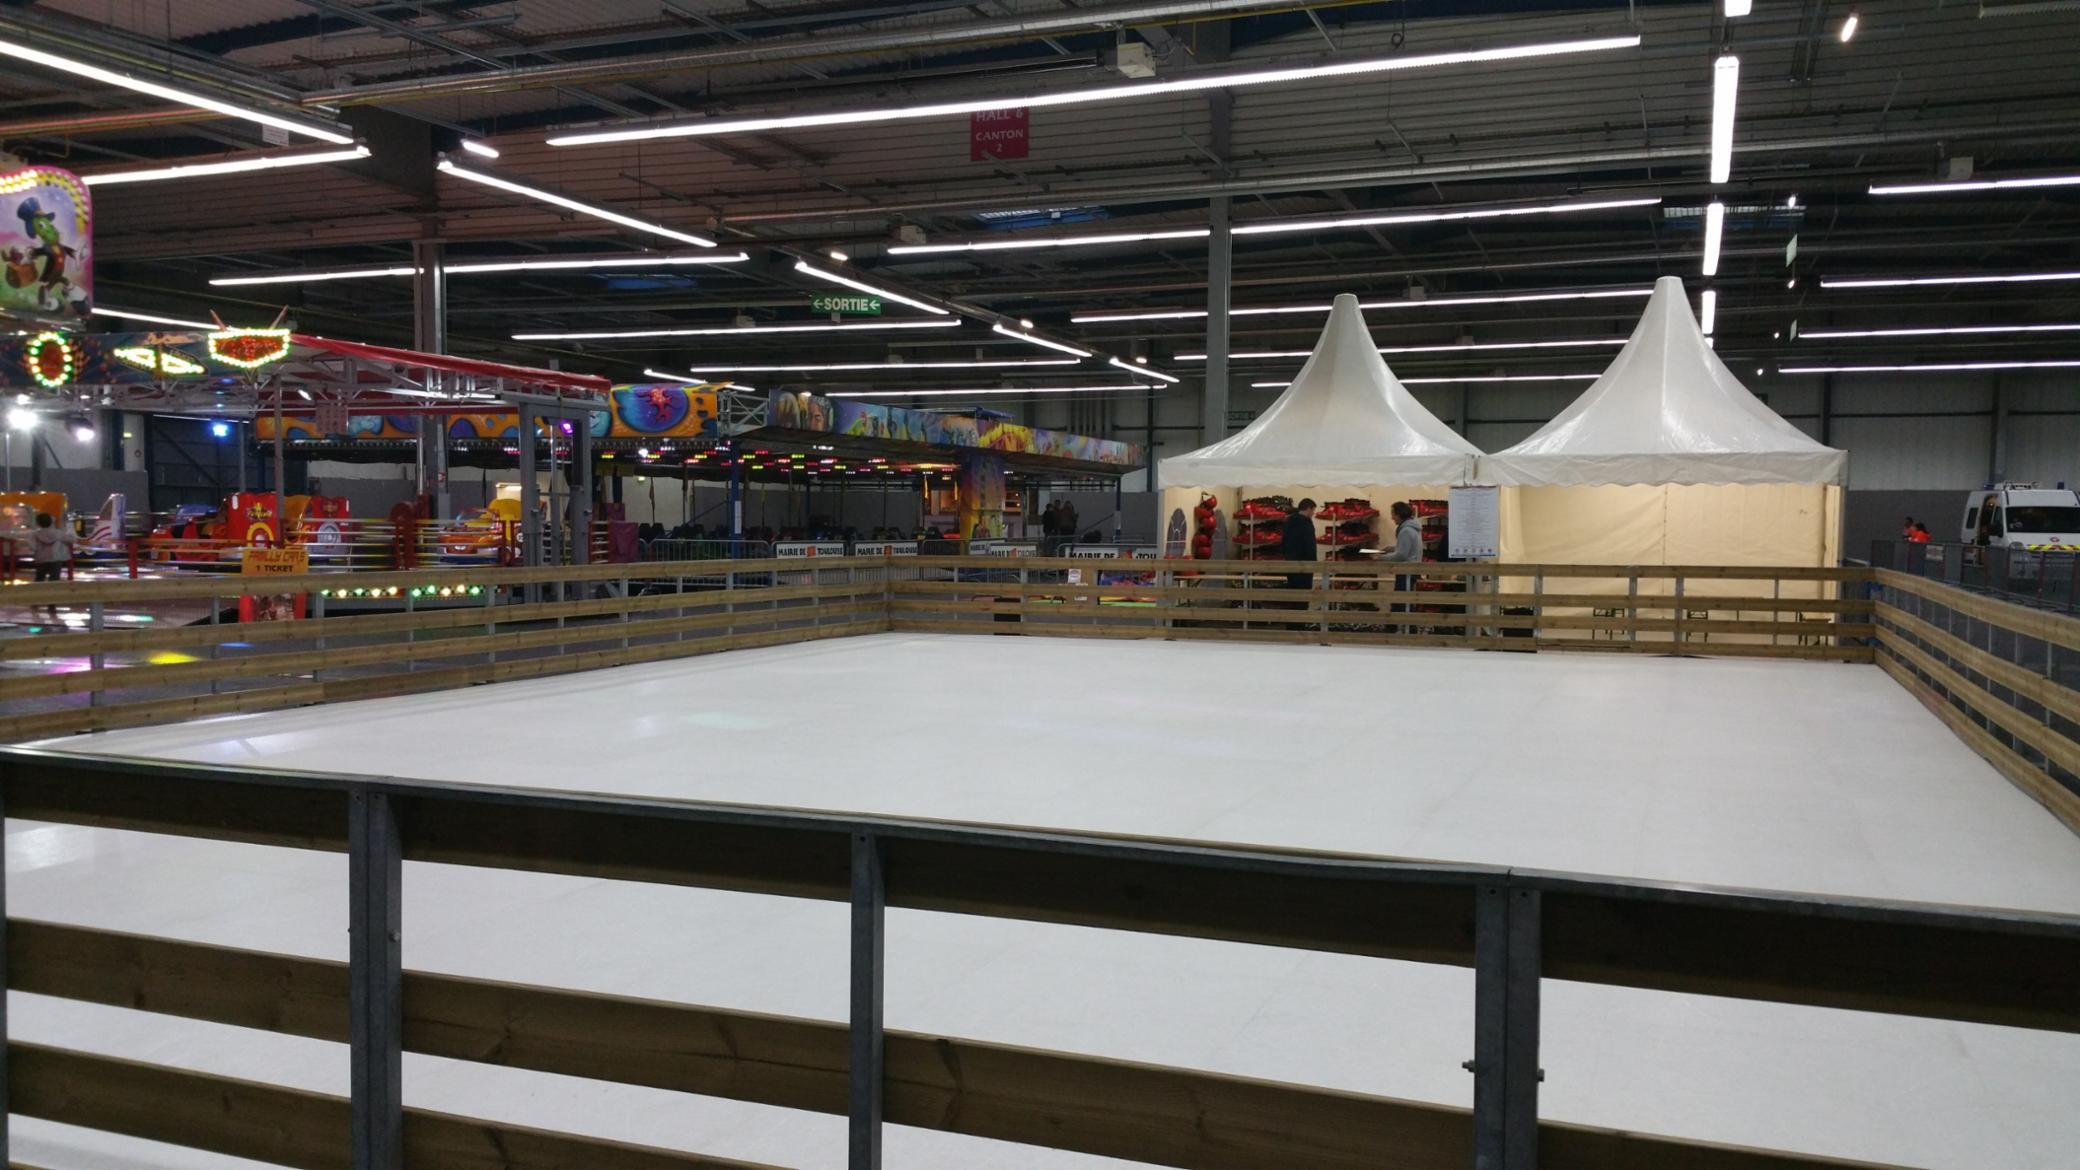 PATINOIRE ICE-TRACK-SHOW Villemade glace patins evenement